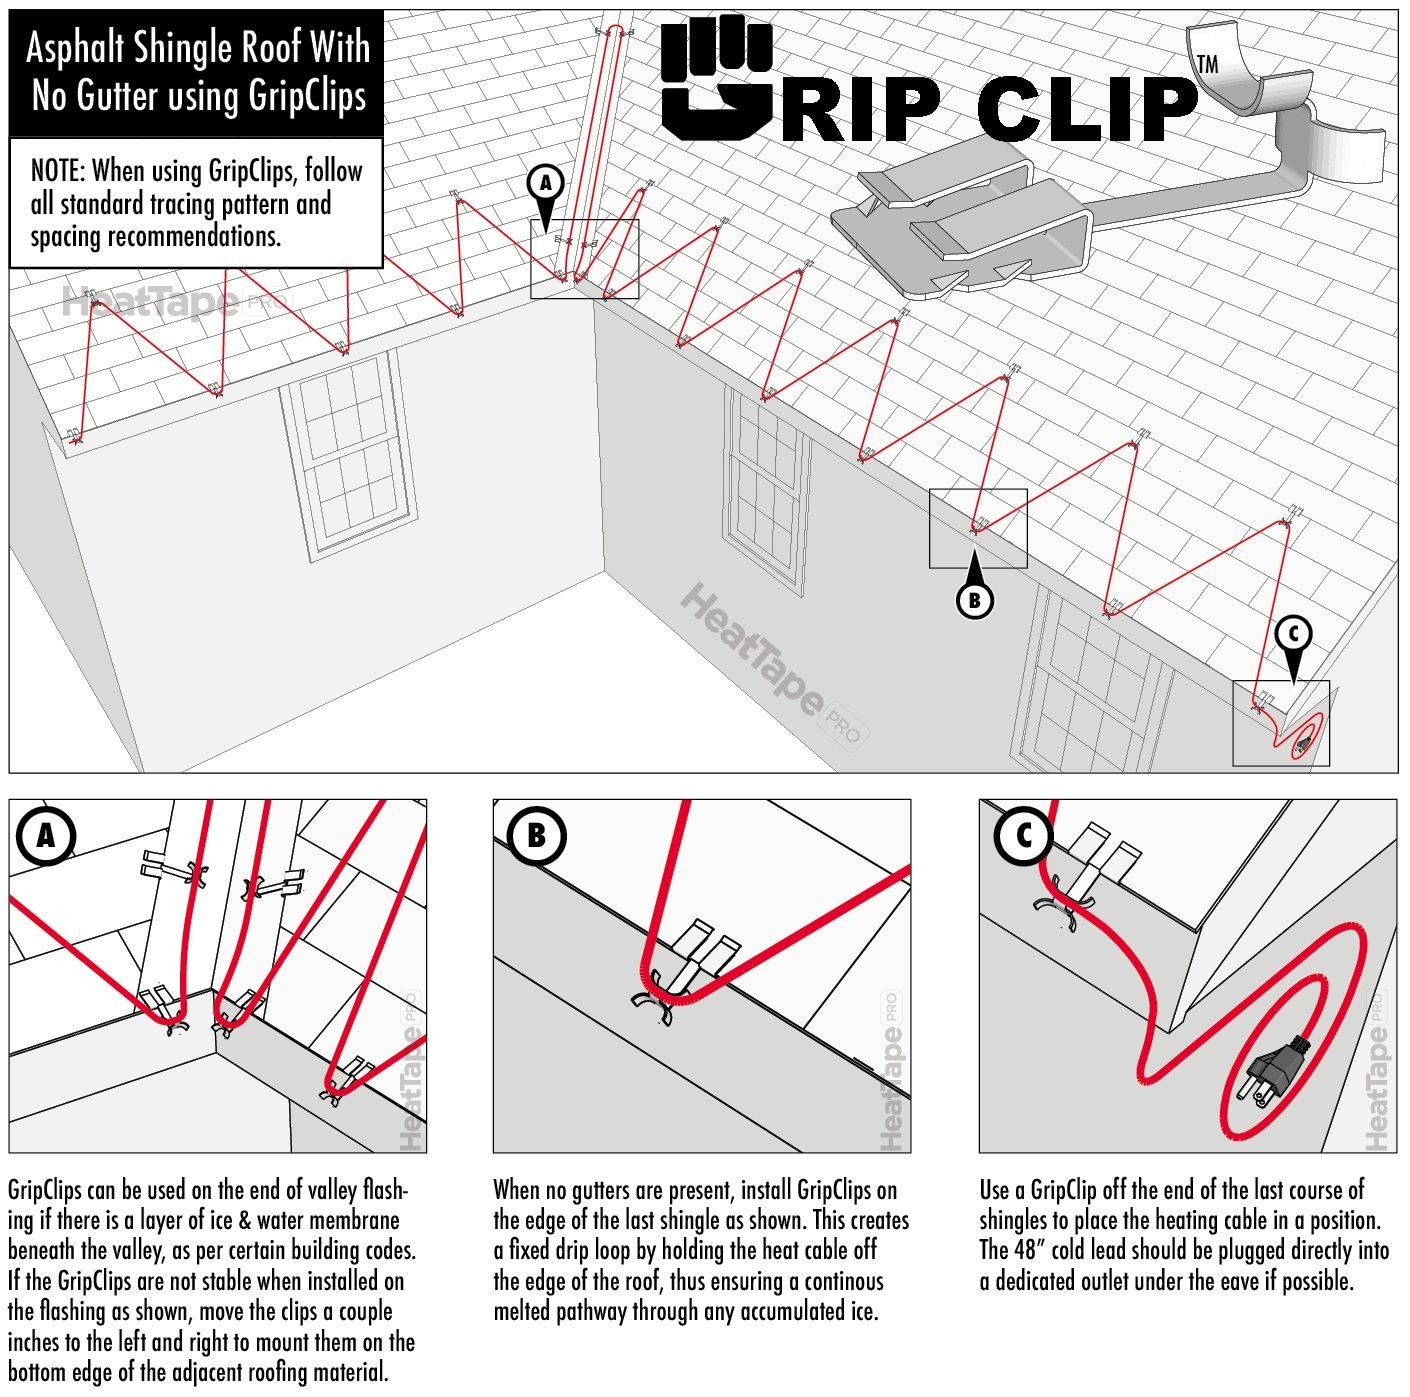 Grip Clip Roof Cable For Securing Ice Dam Heat Tape Wiring In Series Free Download Diagrams Pictures And Holiday Lighting To Roofs 25pack Anodized Black